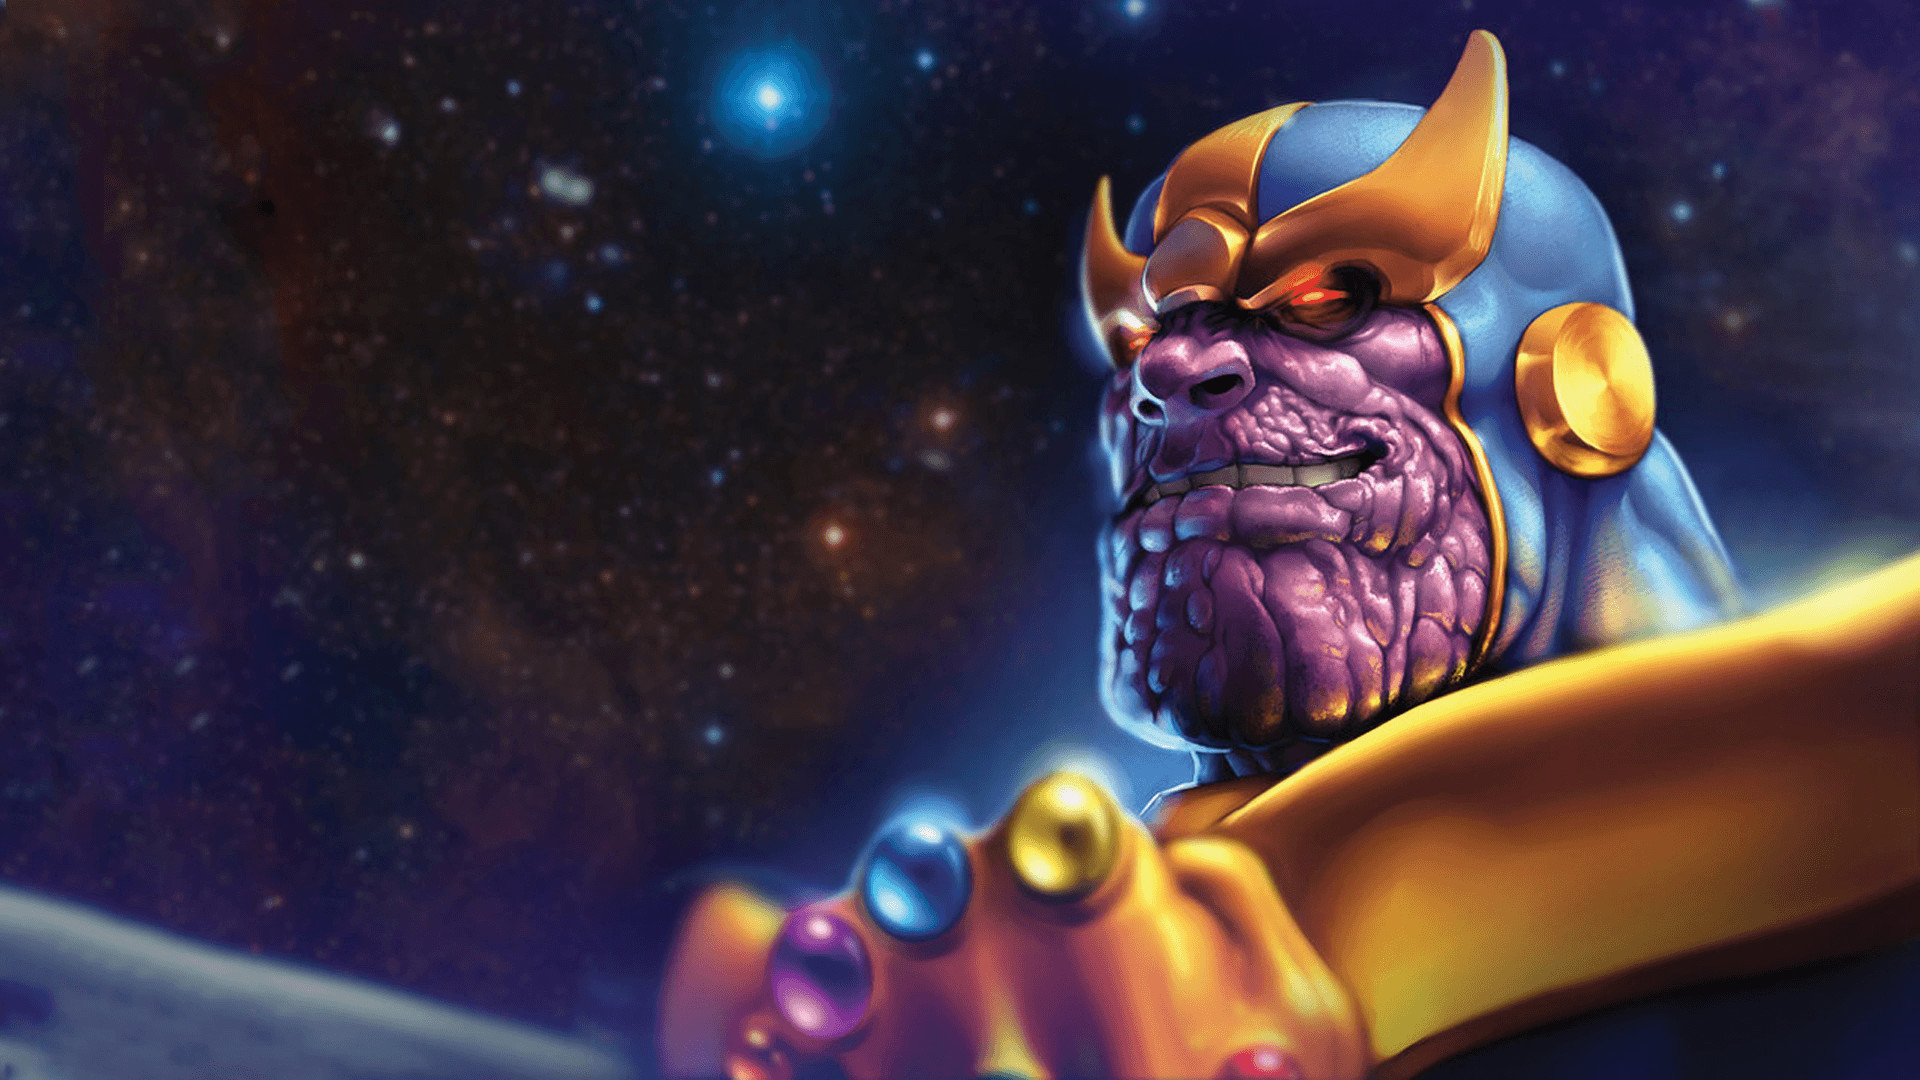 Thanos Wallpaper HD 54 images 1920x1080